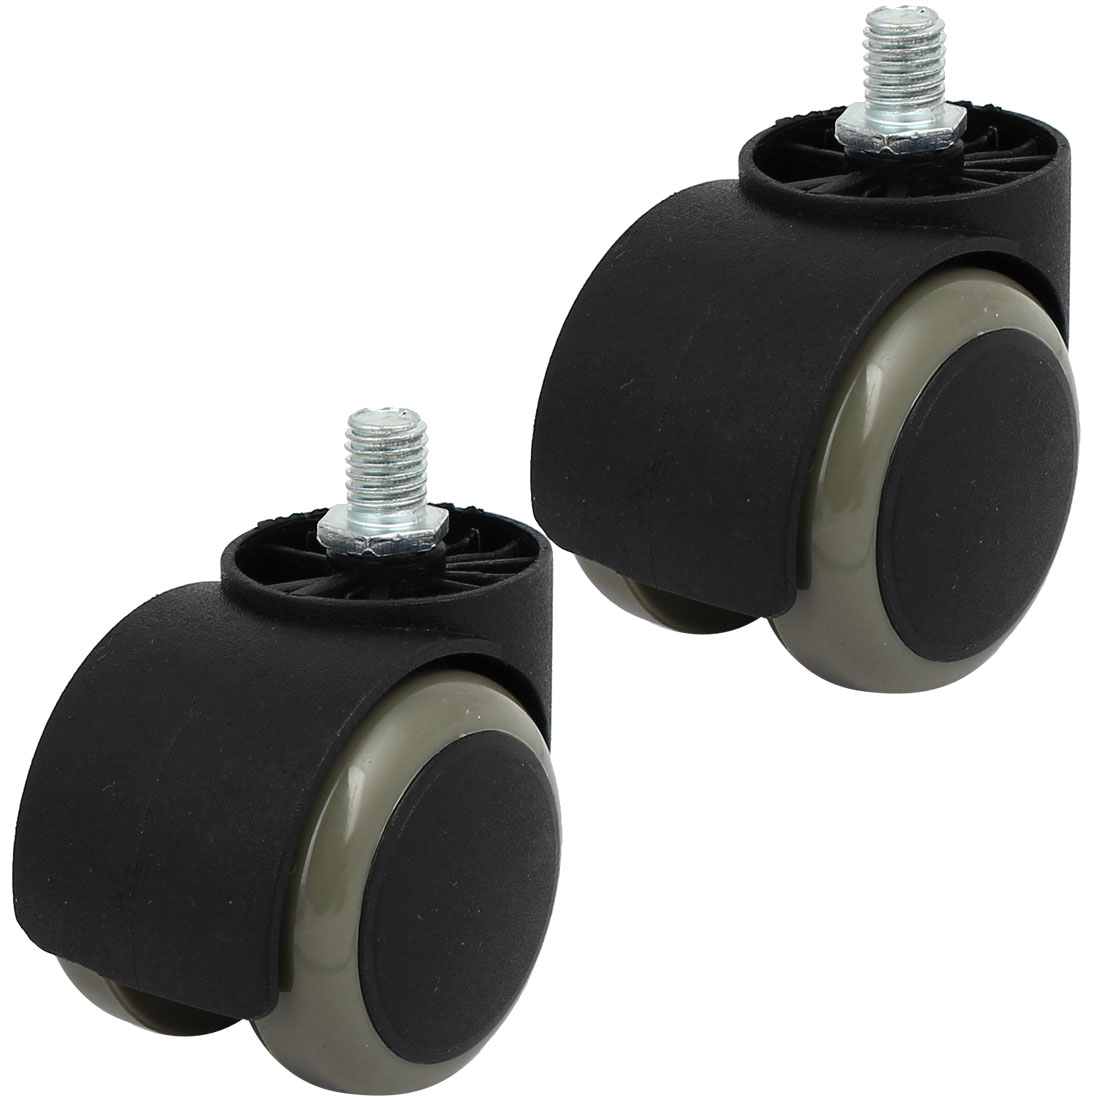 "Office Chair PU Twin Wheel Threaded Stem Swivel Caster M10 Thread 2"" Dia 2pcs"